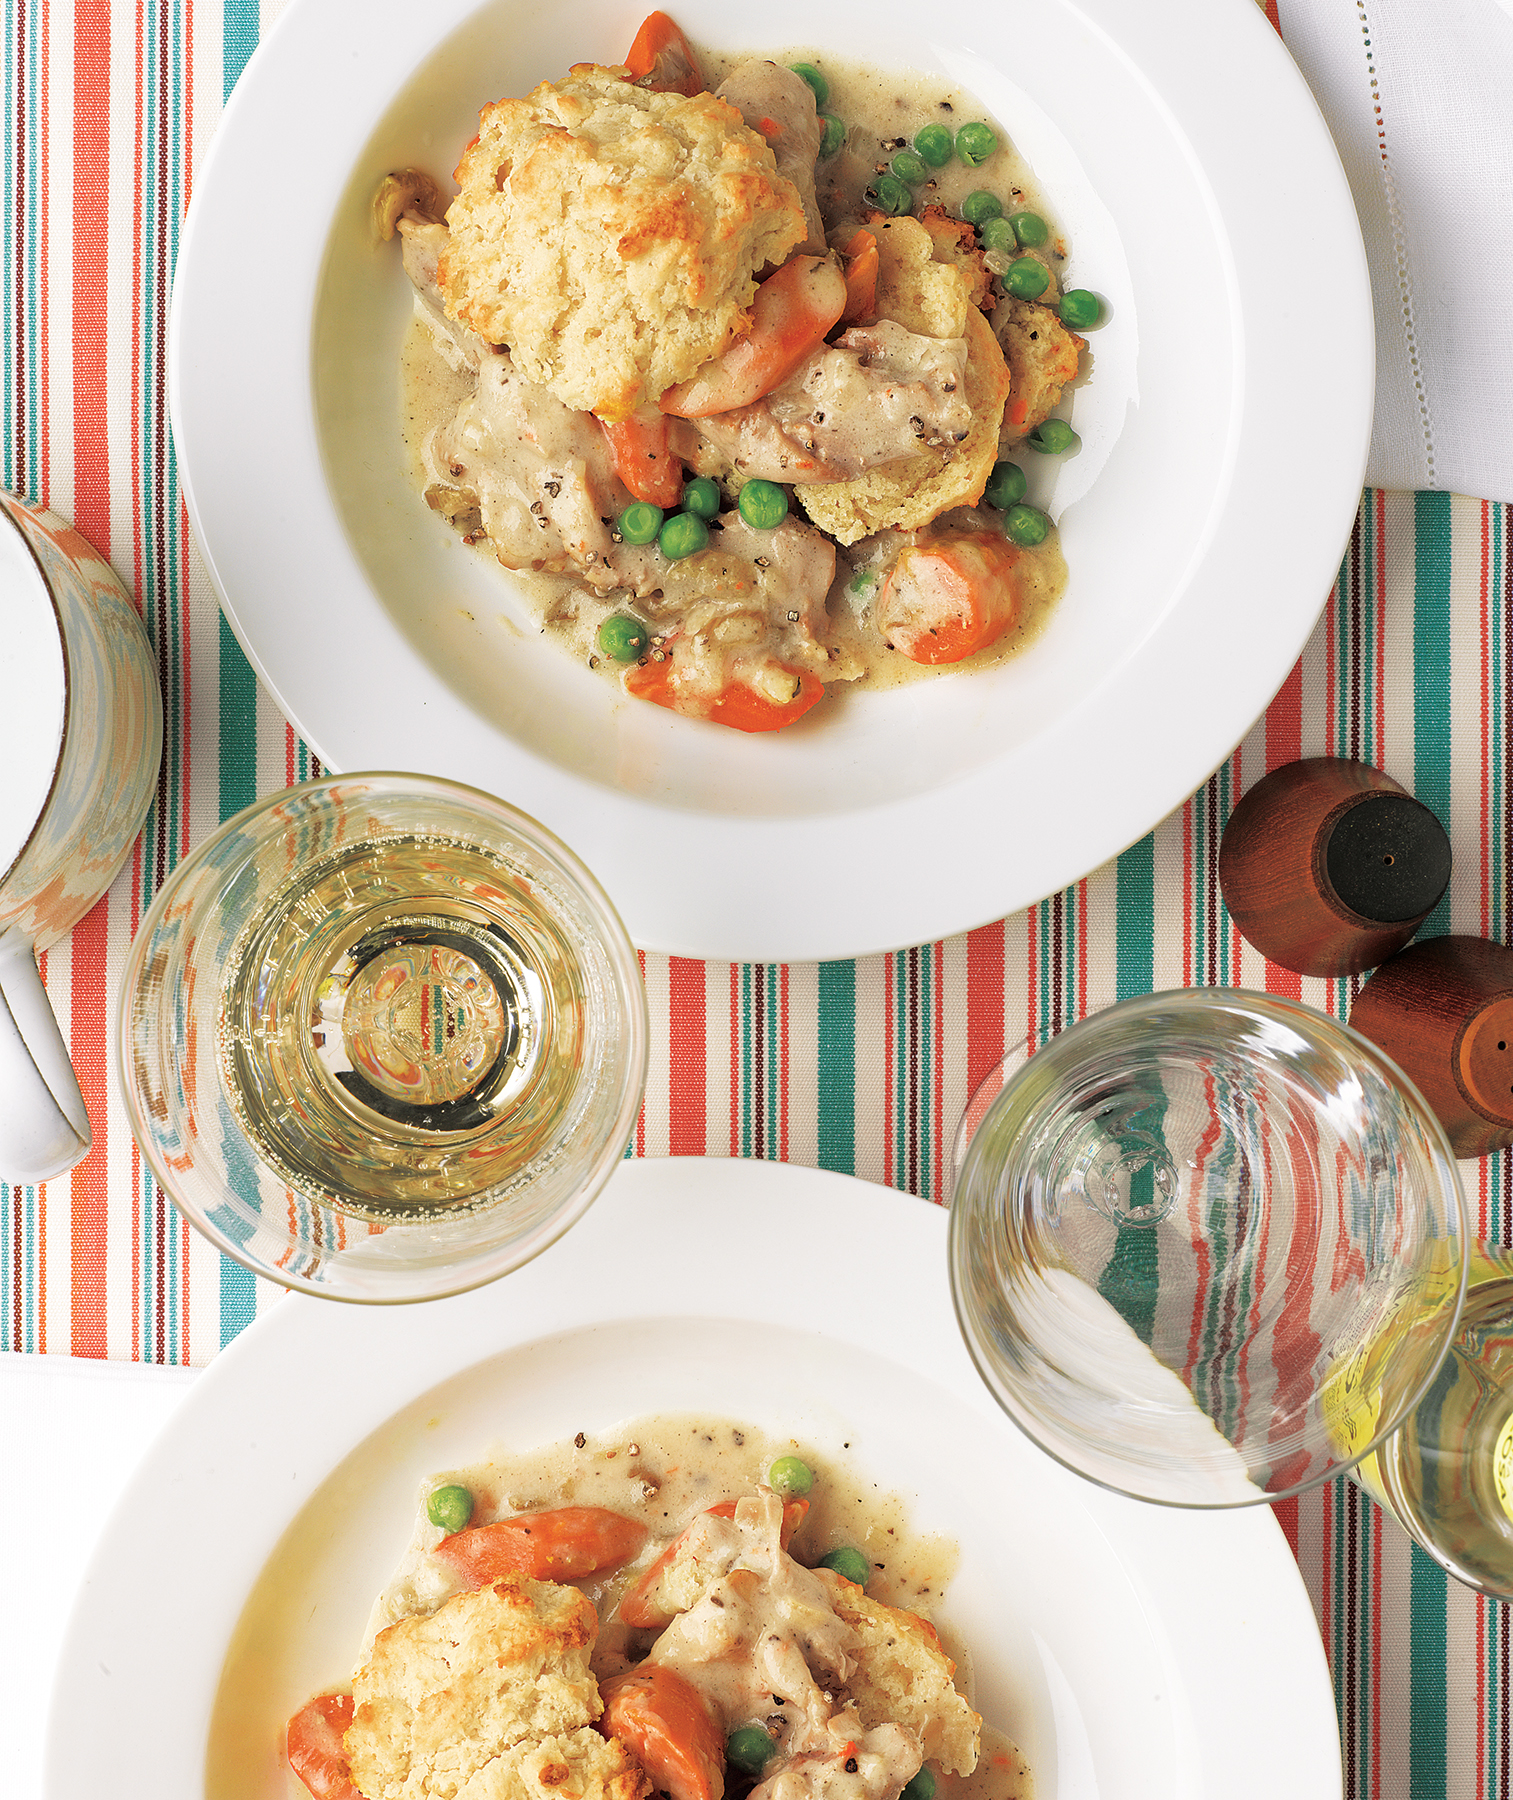 Slow-Cooker Creamy Chicken With Biscuits